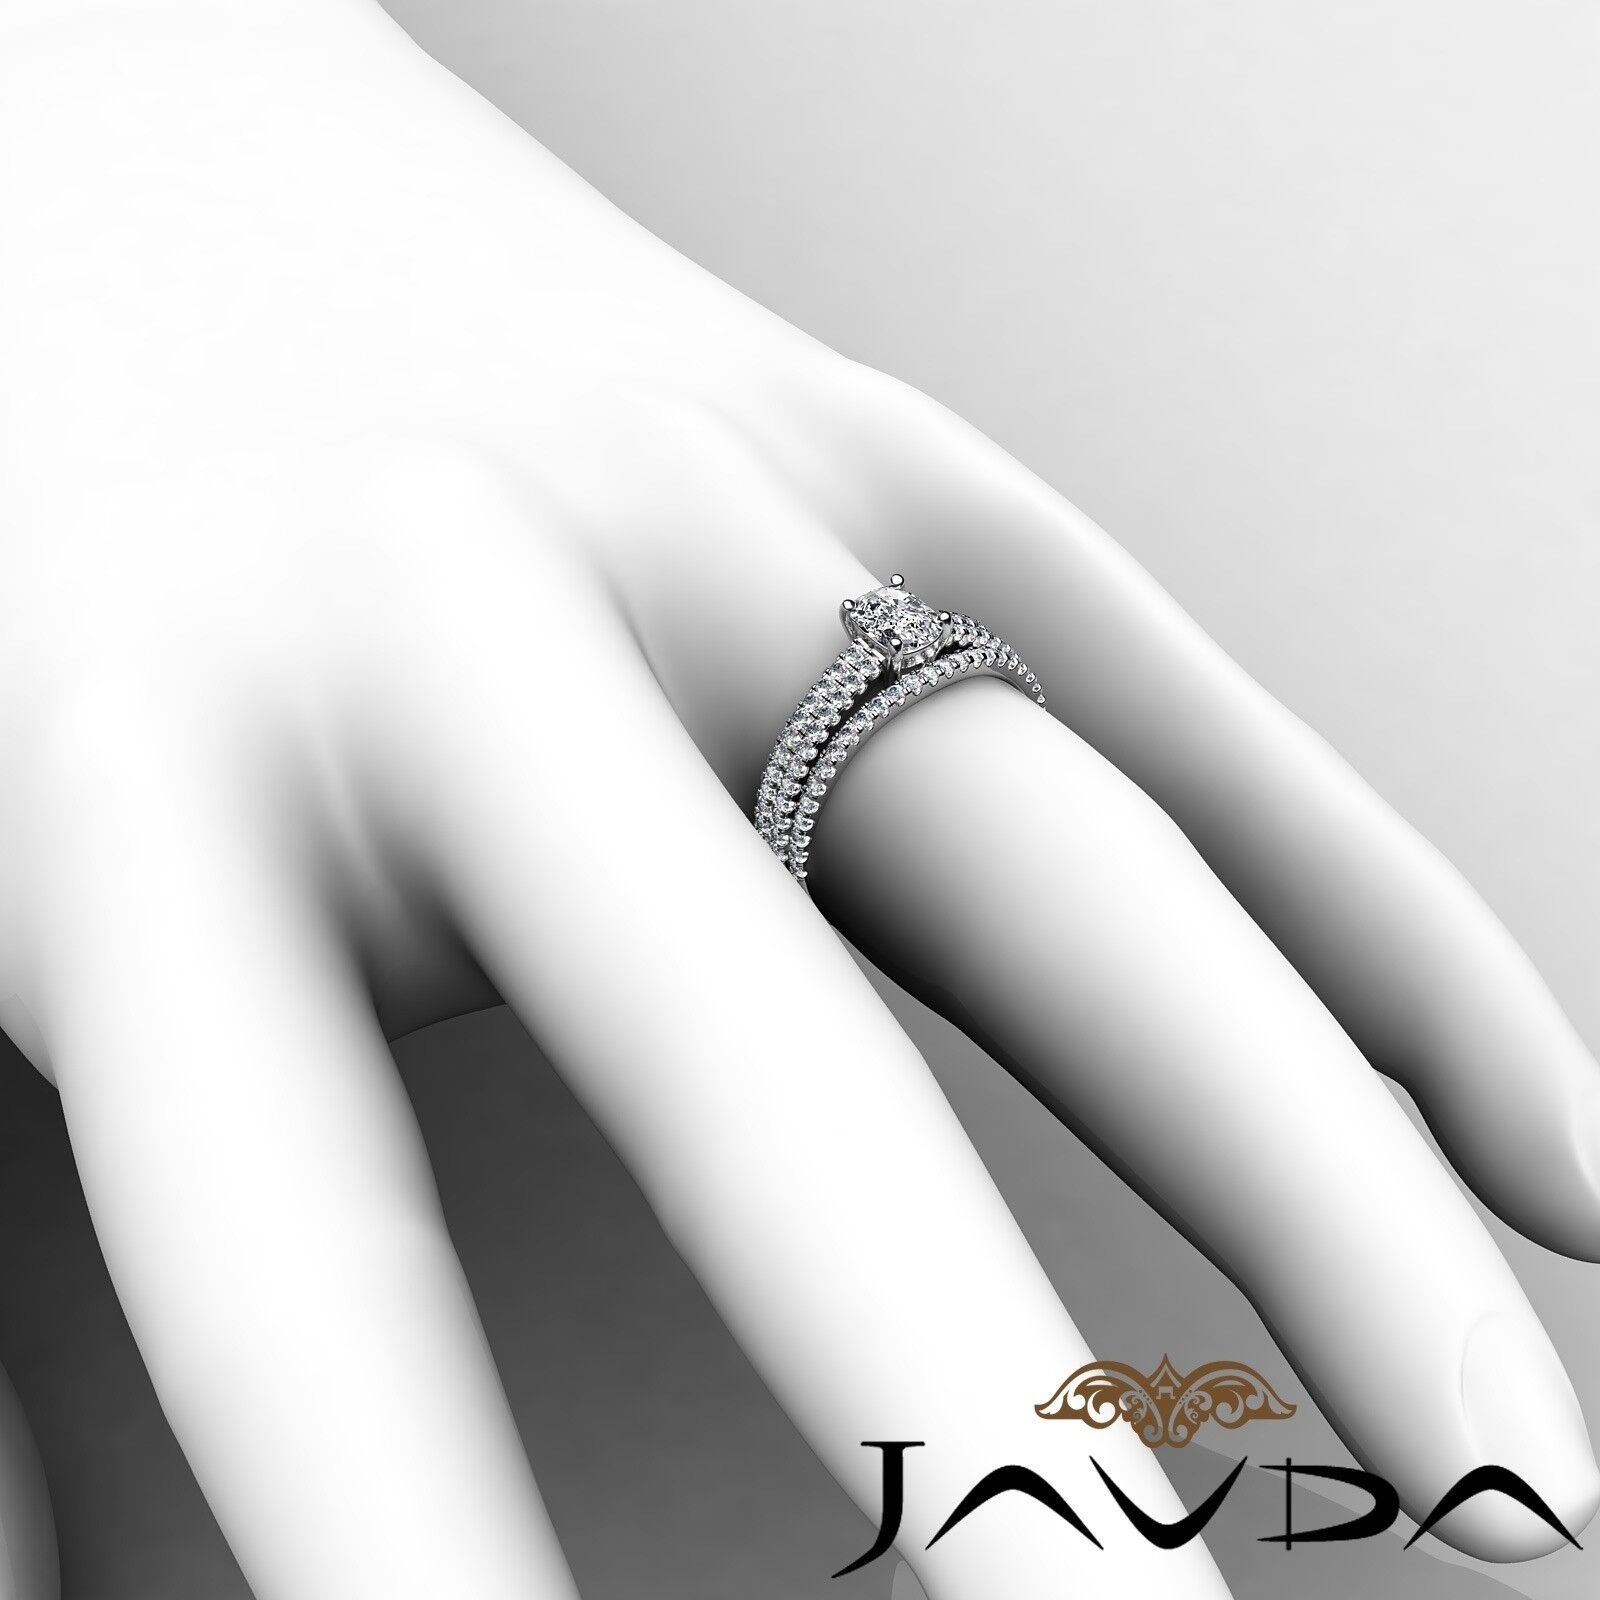 1.54ctw Bridal Scalloped Pave Cushion Diamond Engagement Ring GIA G-SI1 W Gold 6